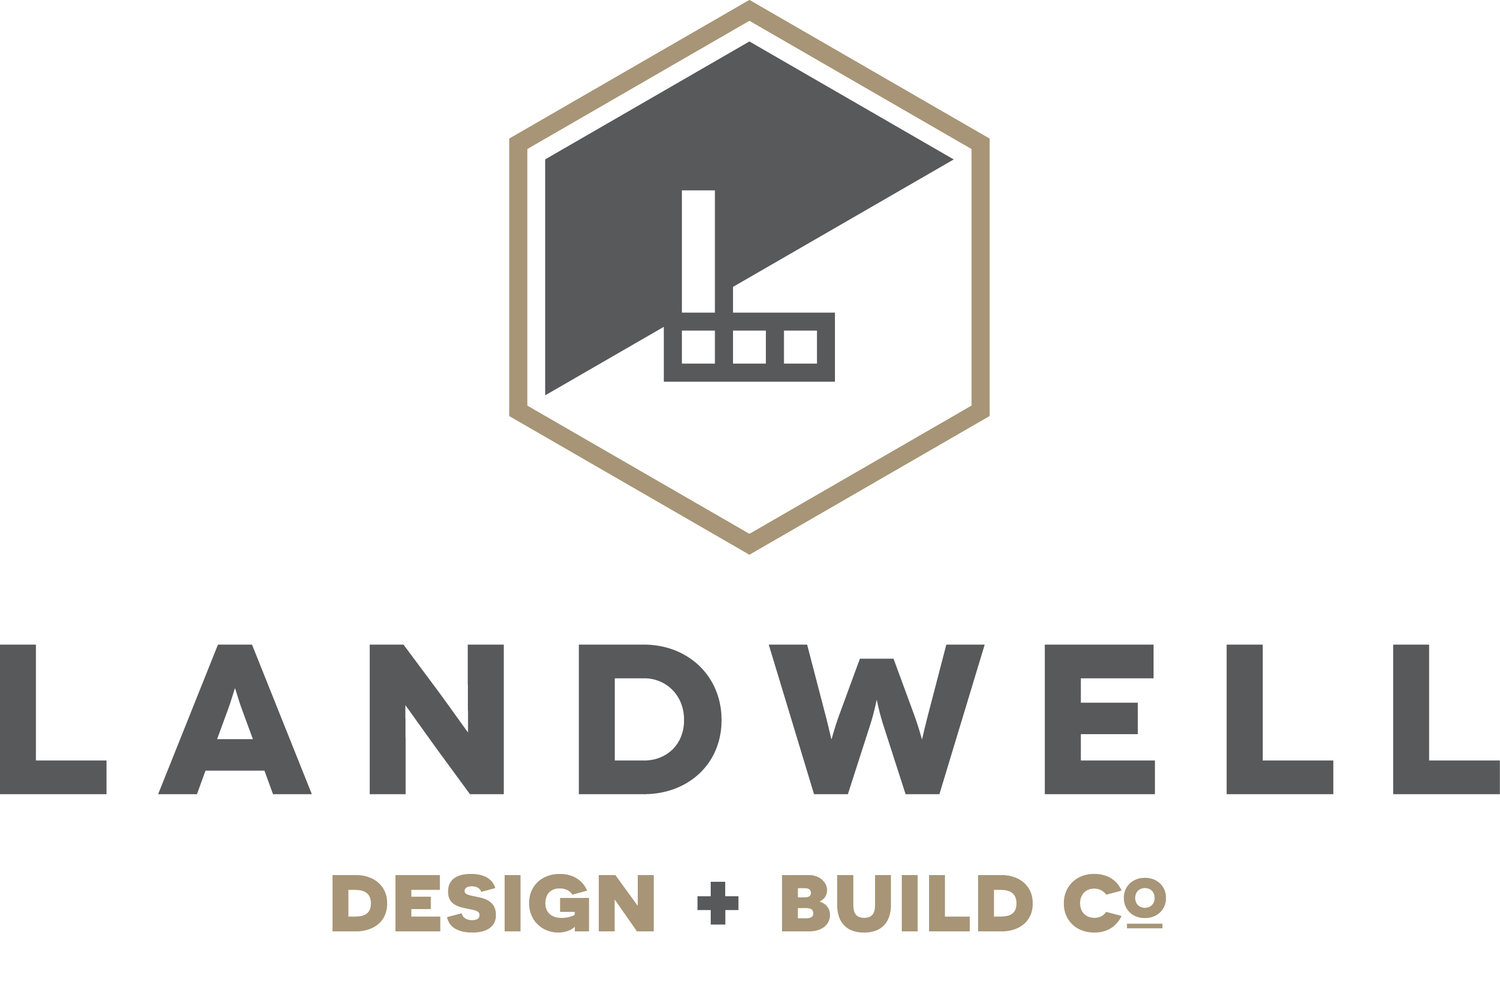 Landwell Design + Build Co. | San Luis Obispo Landscape Design + Construction